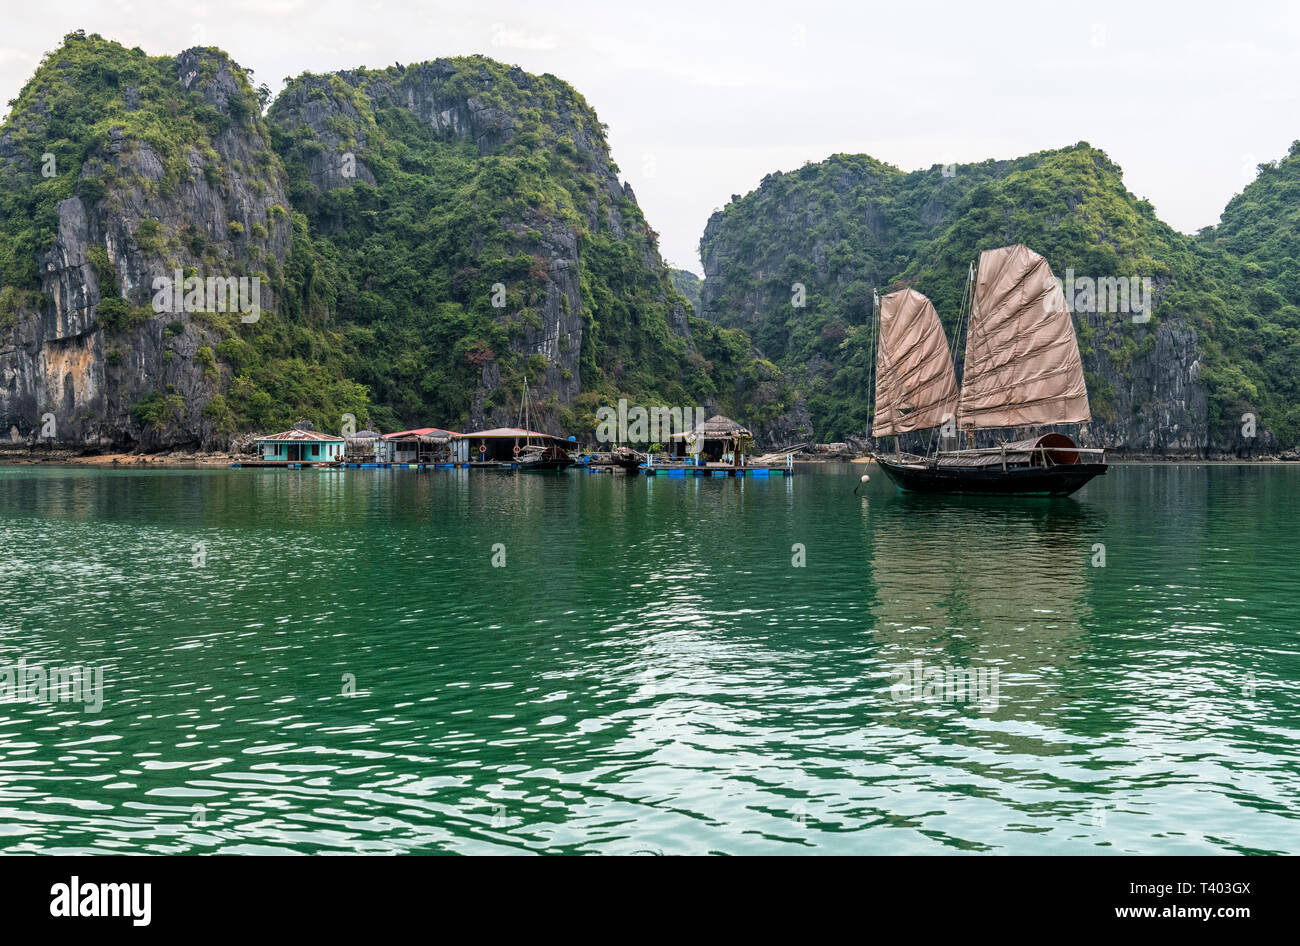 Traditional old junk boat near floating village in Ha Long Bay, Vietnam - Stock Image